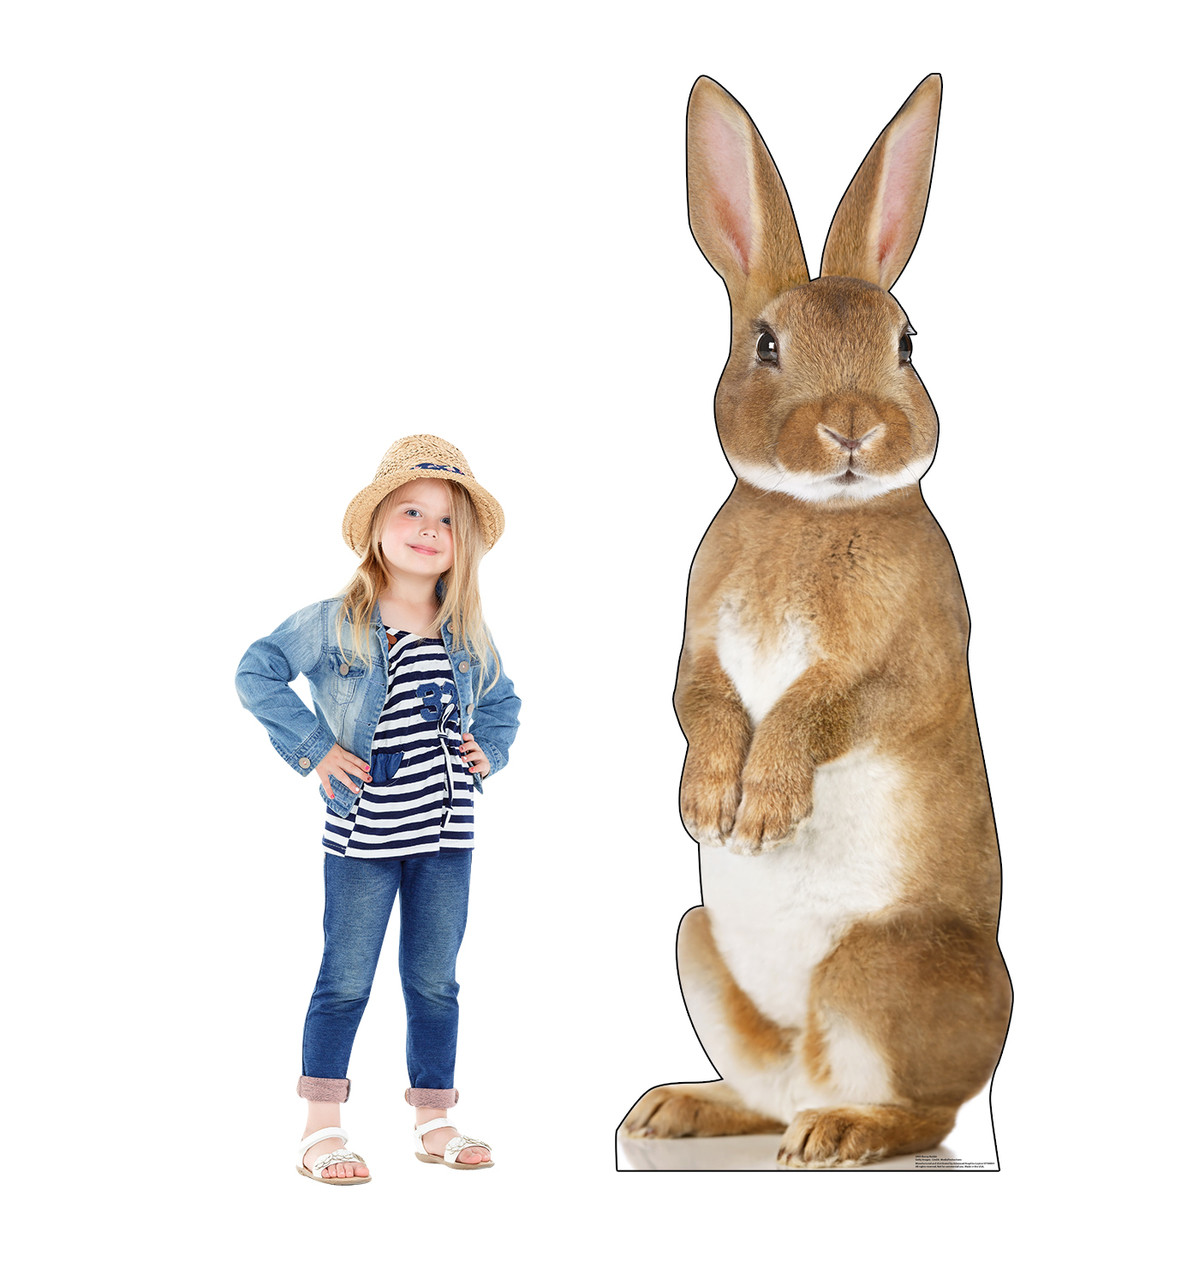 This is a life-size cardboard standee of a Bunny Rabbit with model.